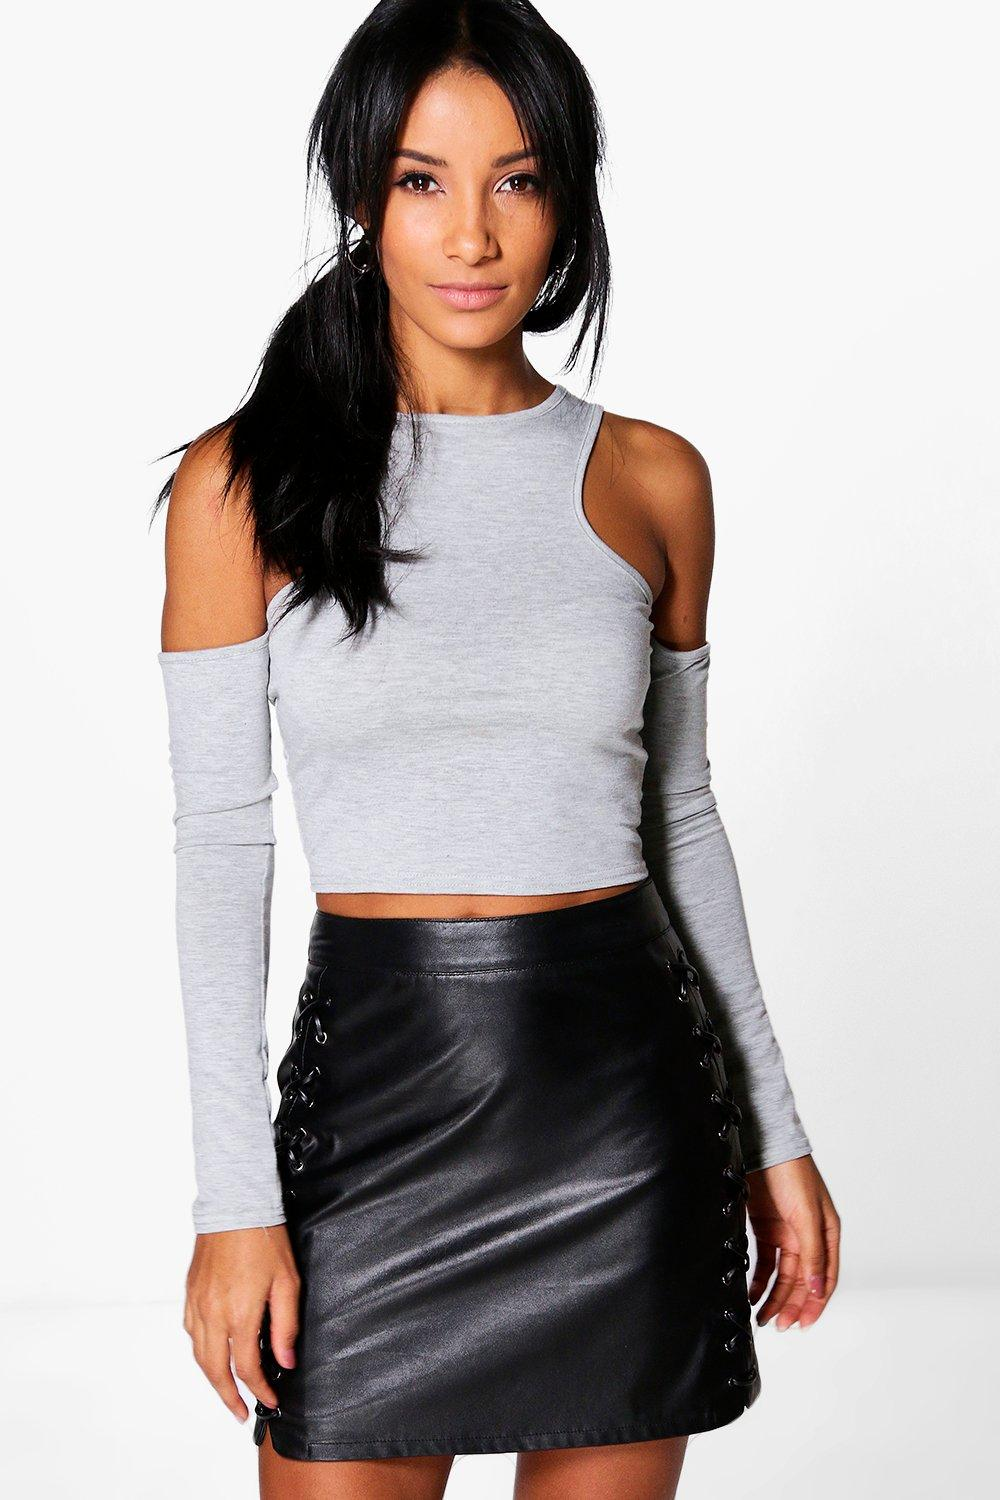 Asia Cut Out Shoulder Crop Top